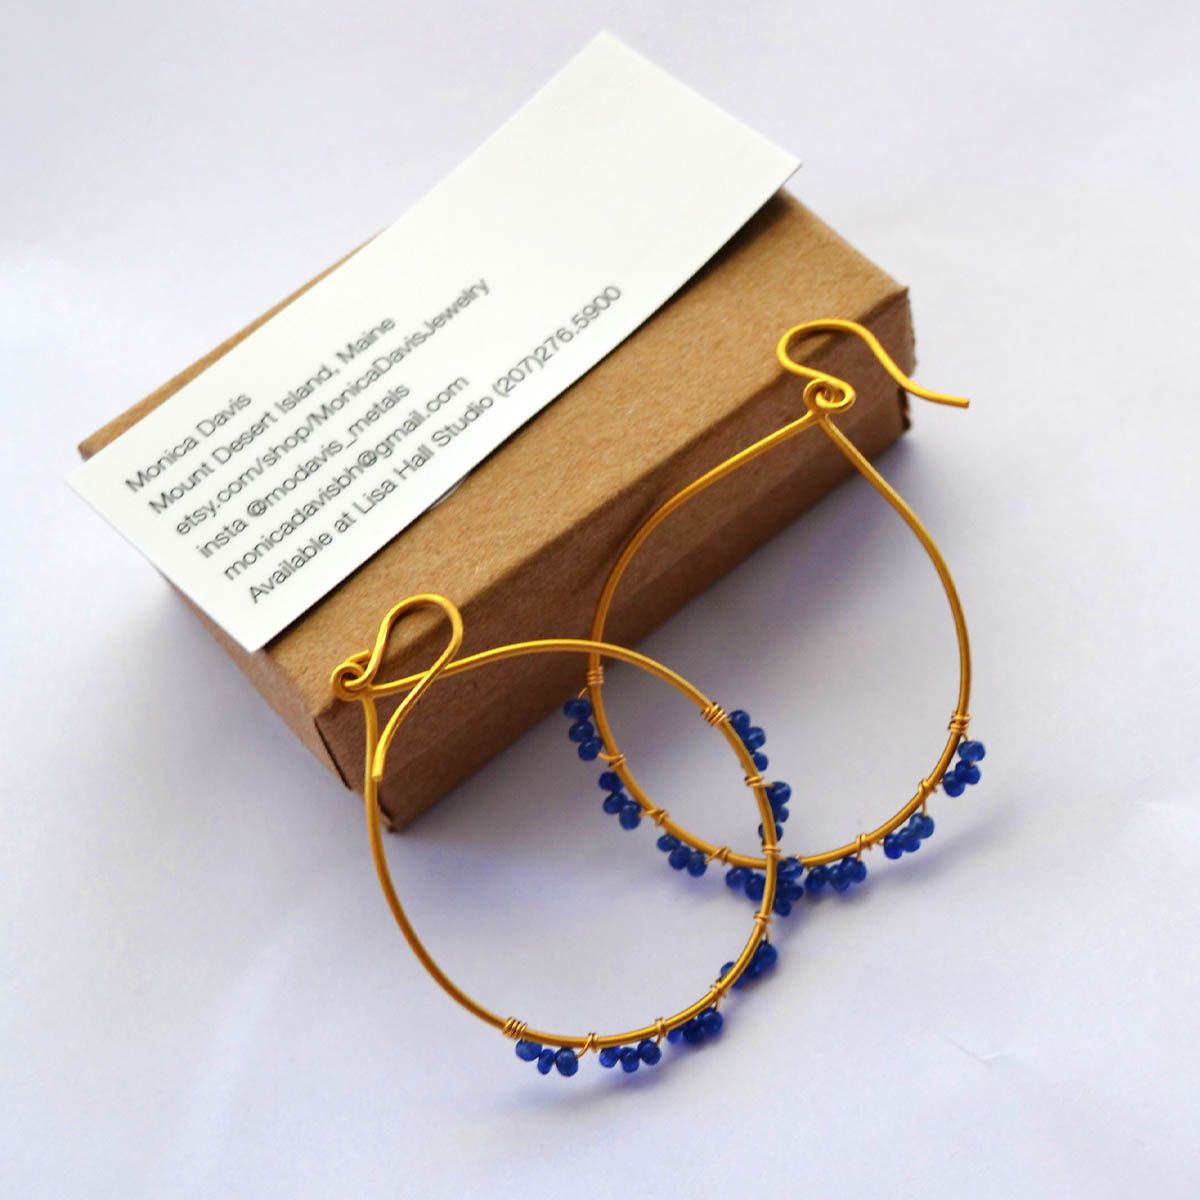 Beaded Earrings - Monica Davis created and generously donated this fun pair of earrings. Featuring vermeil hoops and blue sapphire, these are sure to be noticed and admired.Retail Value: $225.00